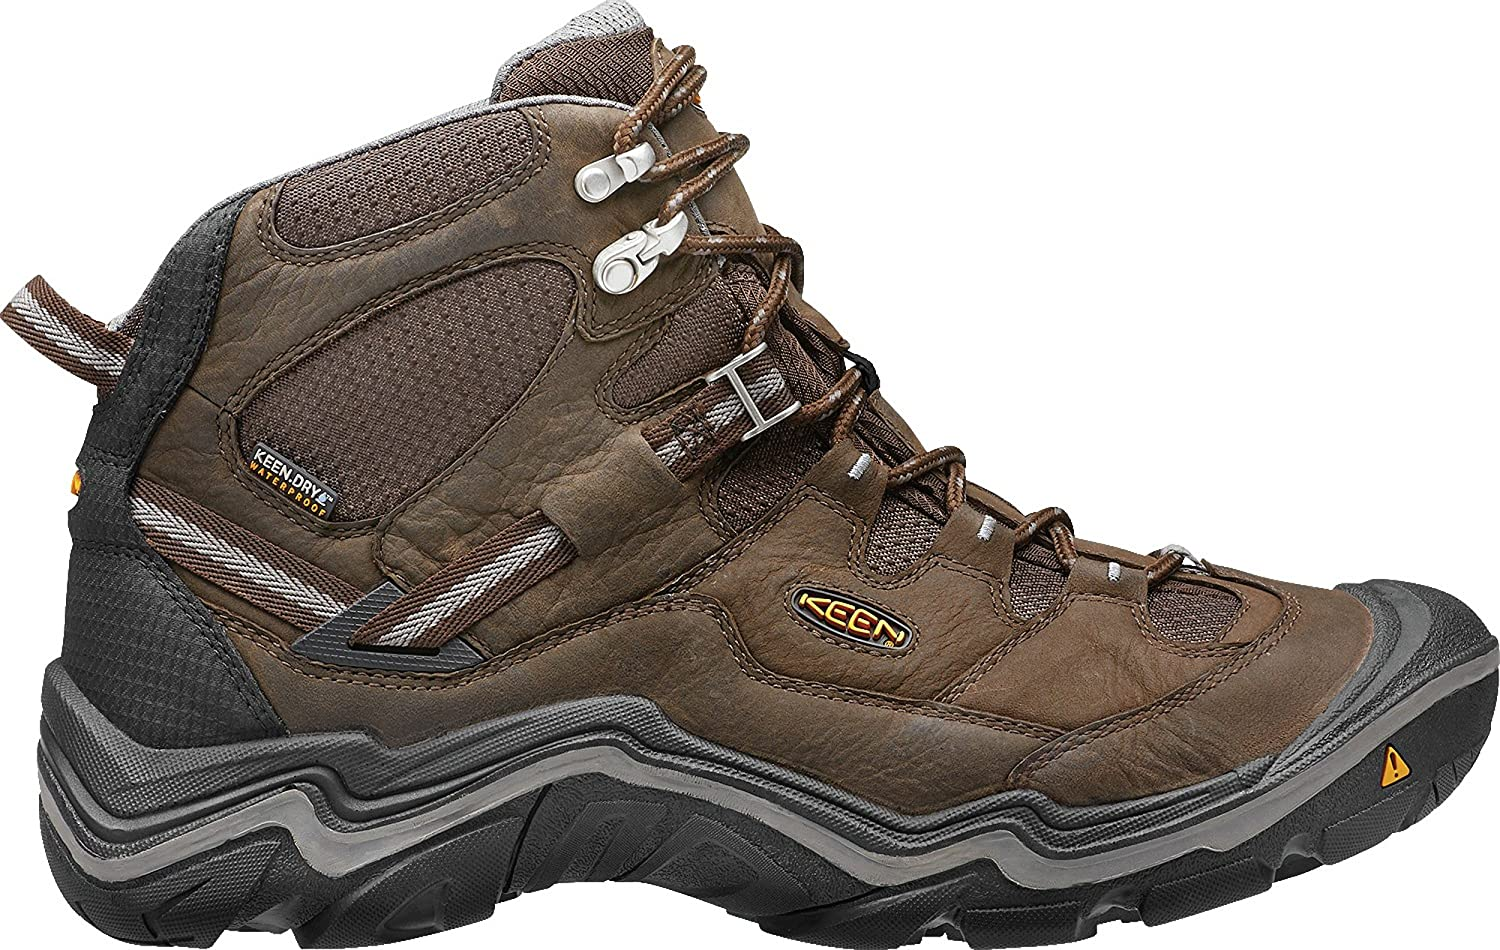 d6218a62775 KEEN - Men's Durand Mid Wide Waterproof Hiking Boot